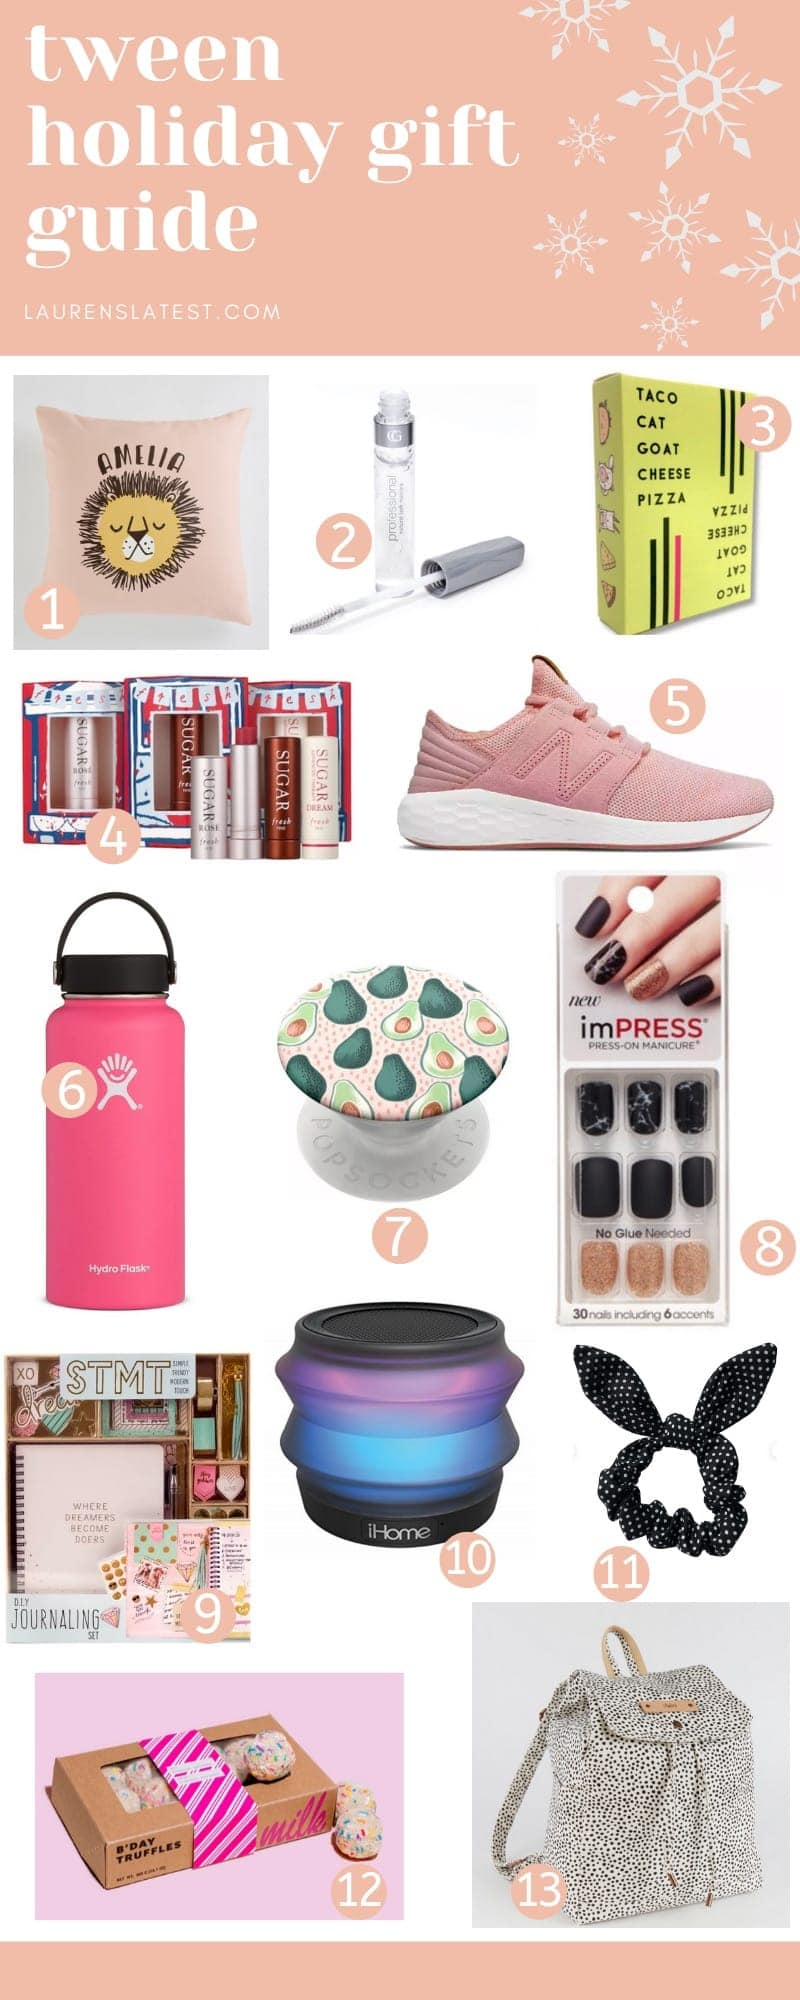 Holiday gift guide with various items